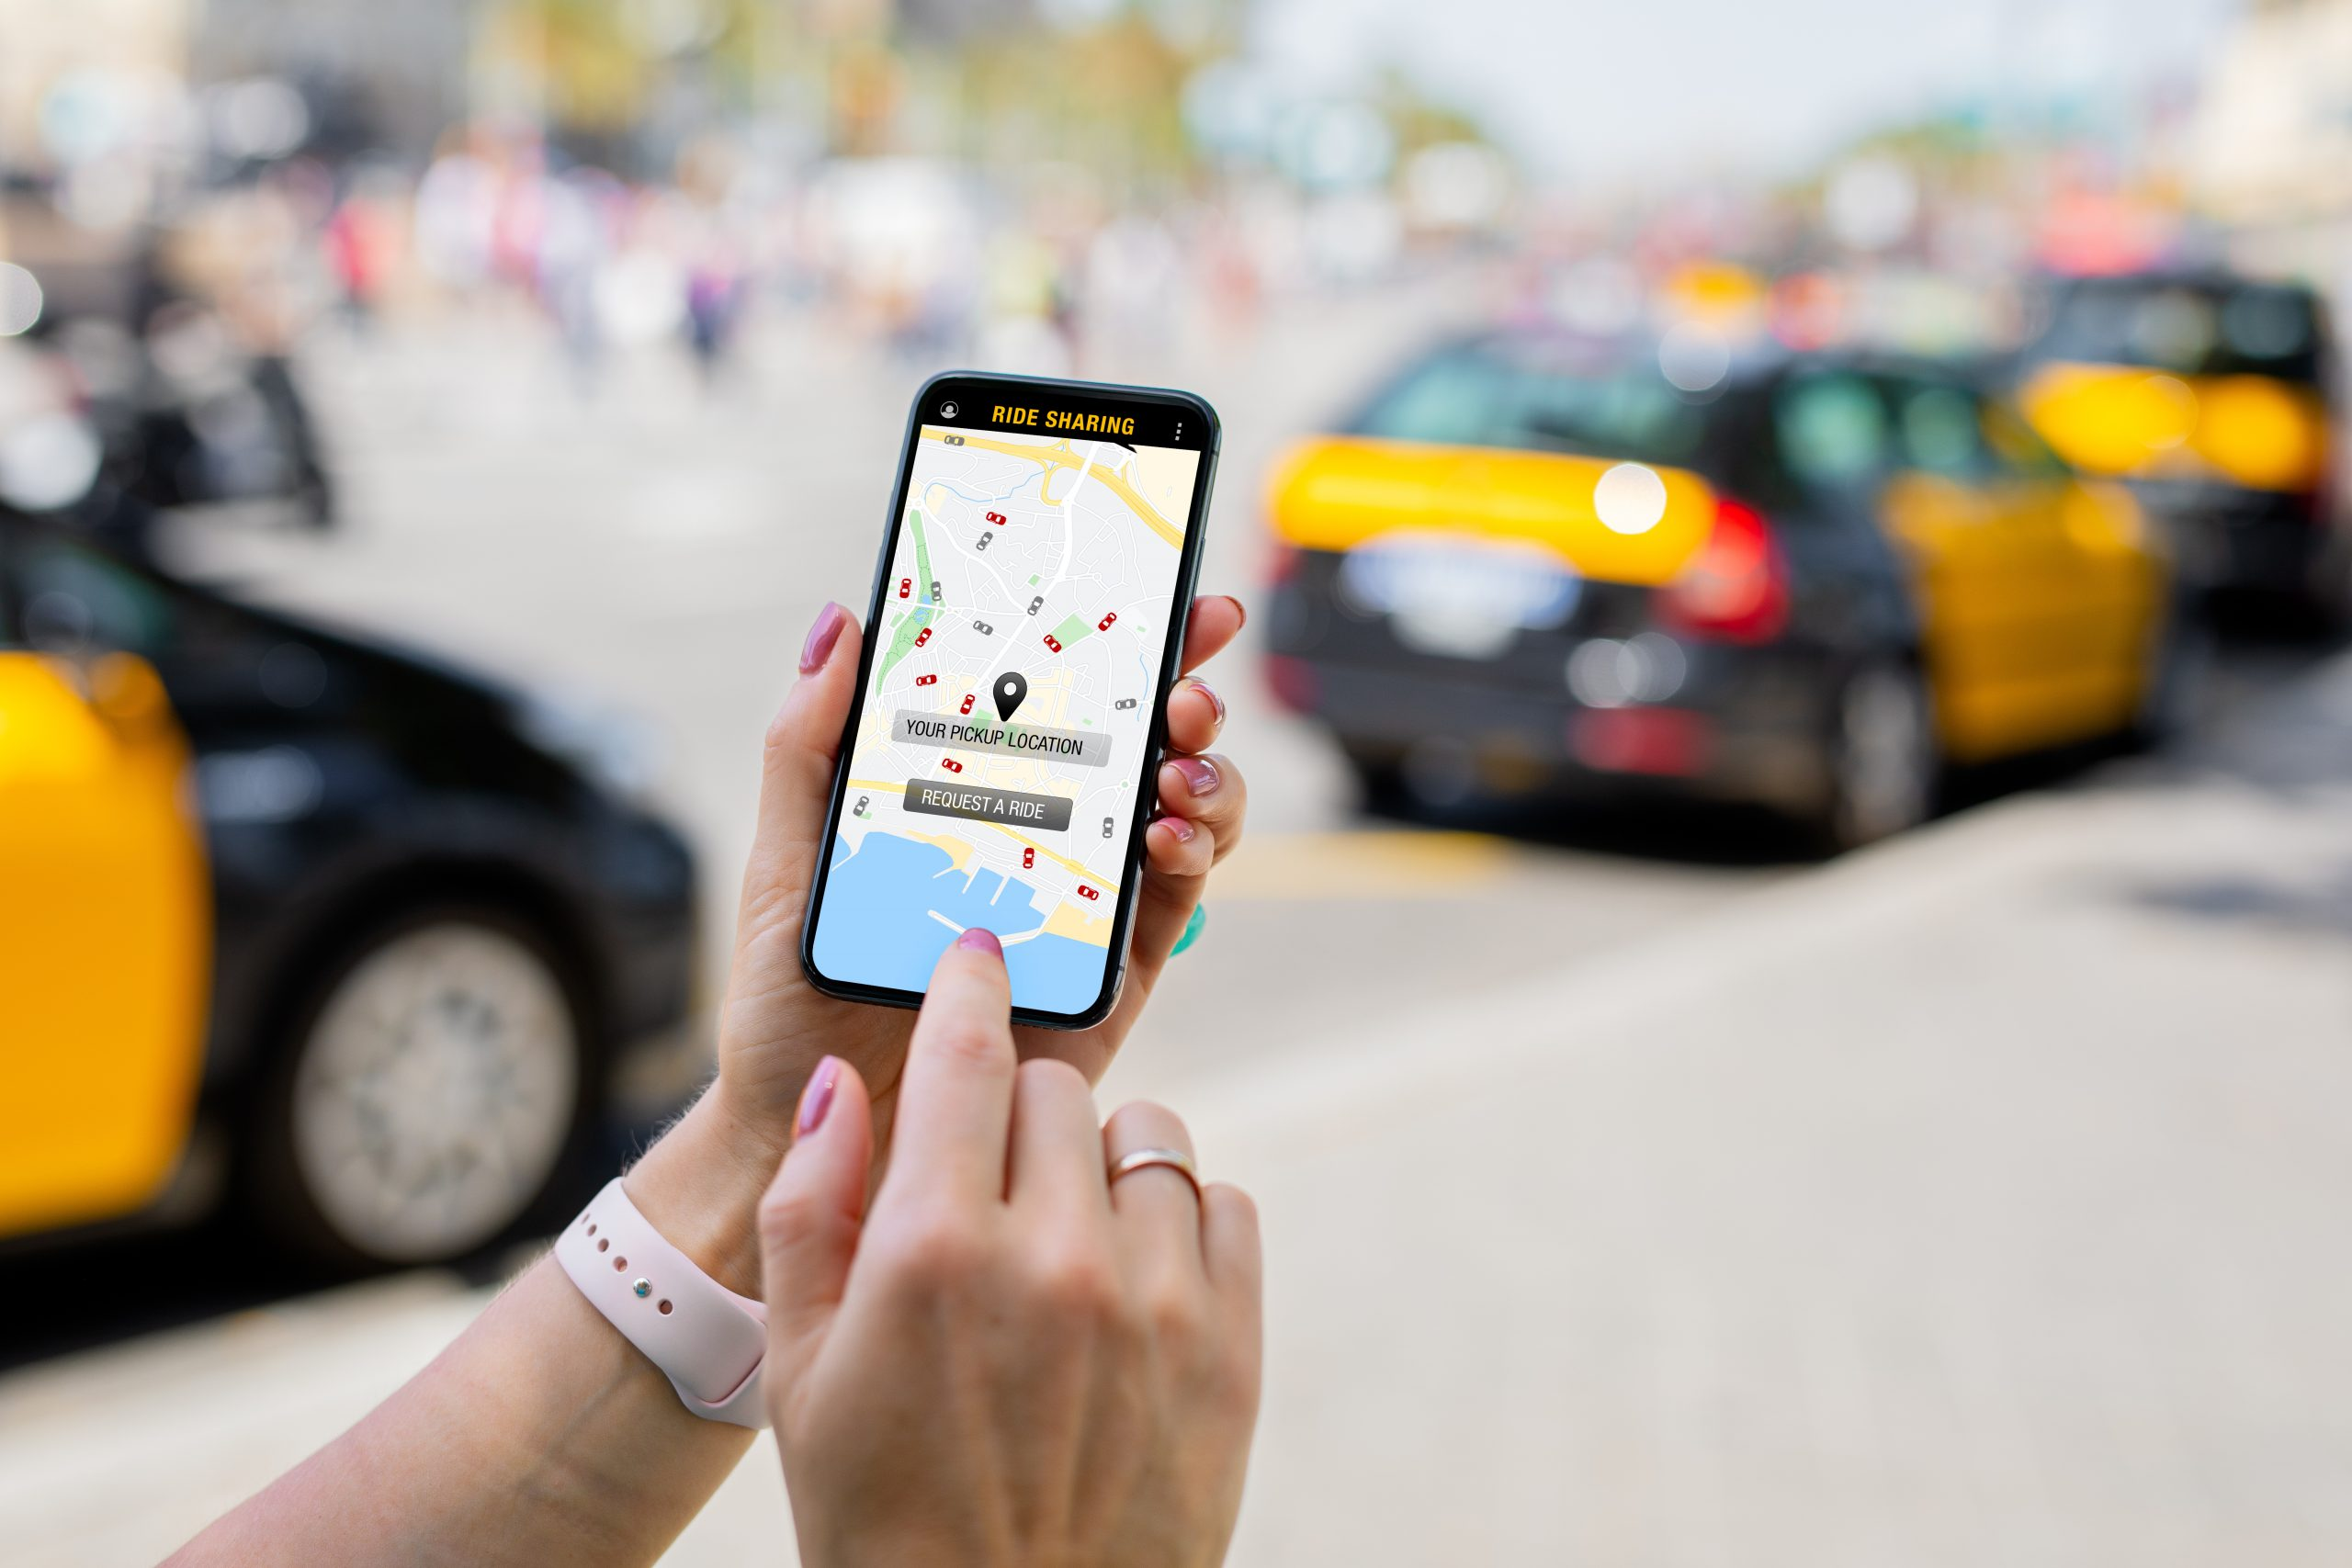 Person using ride sharing app on mobile phone